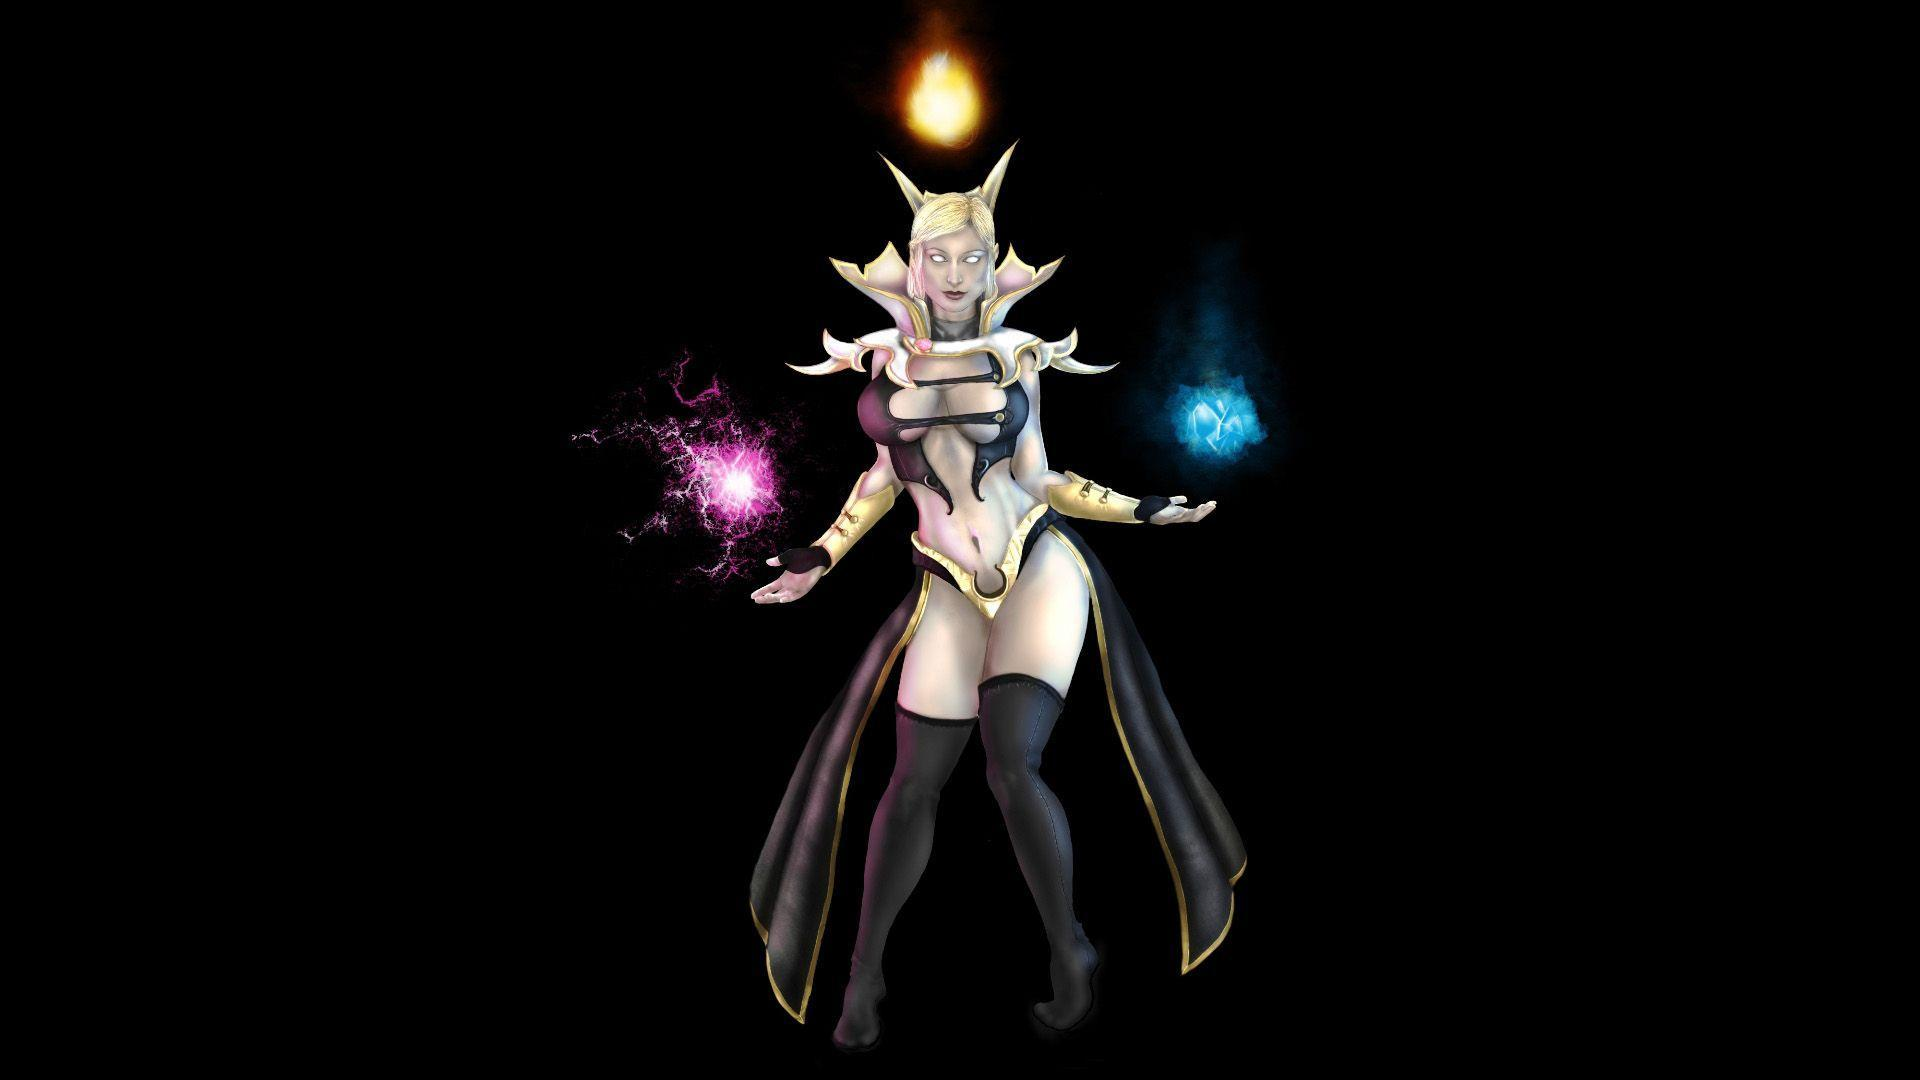 Invoker Wallpapers - Wallpaper Cave